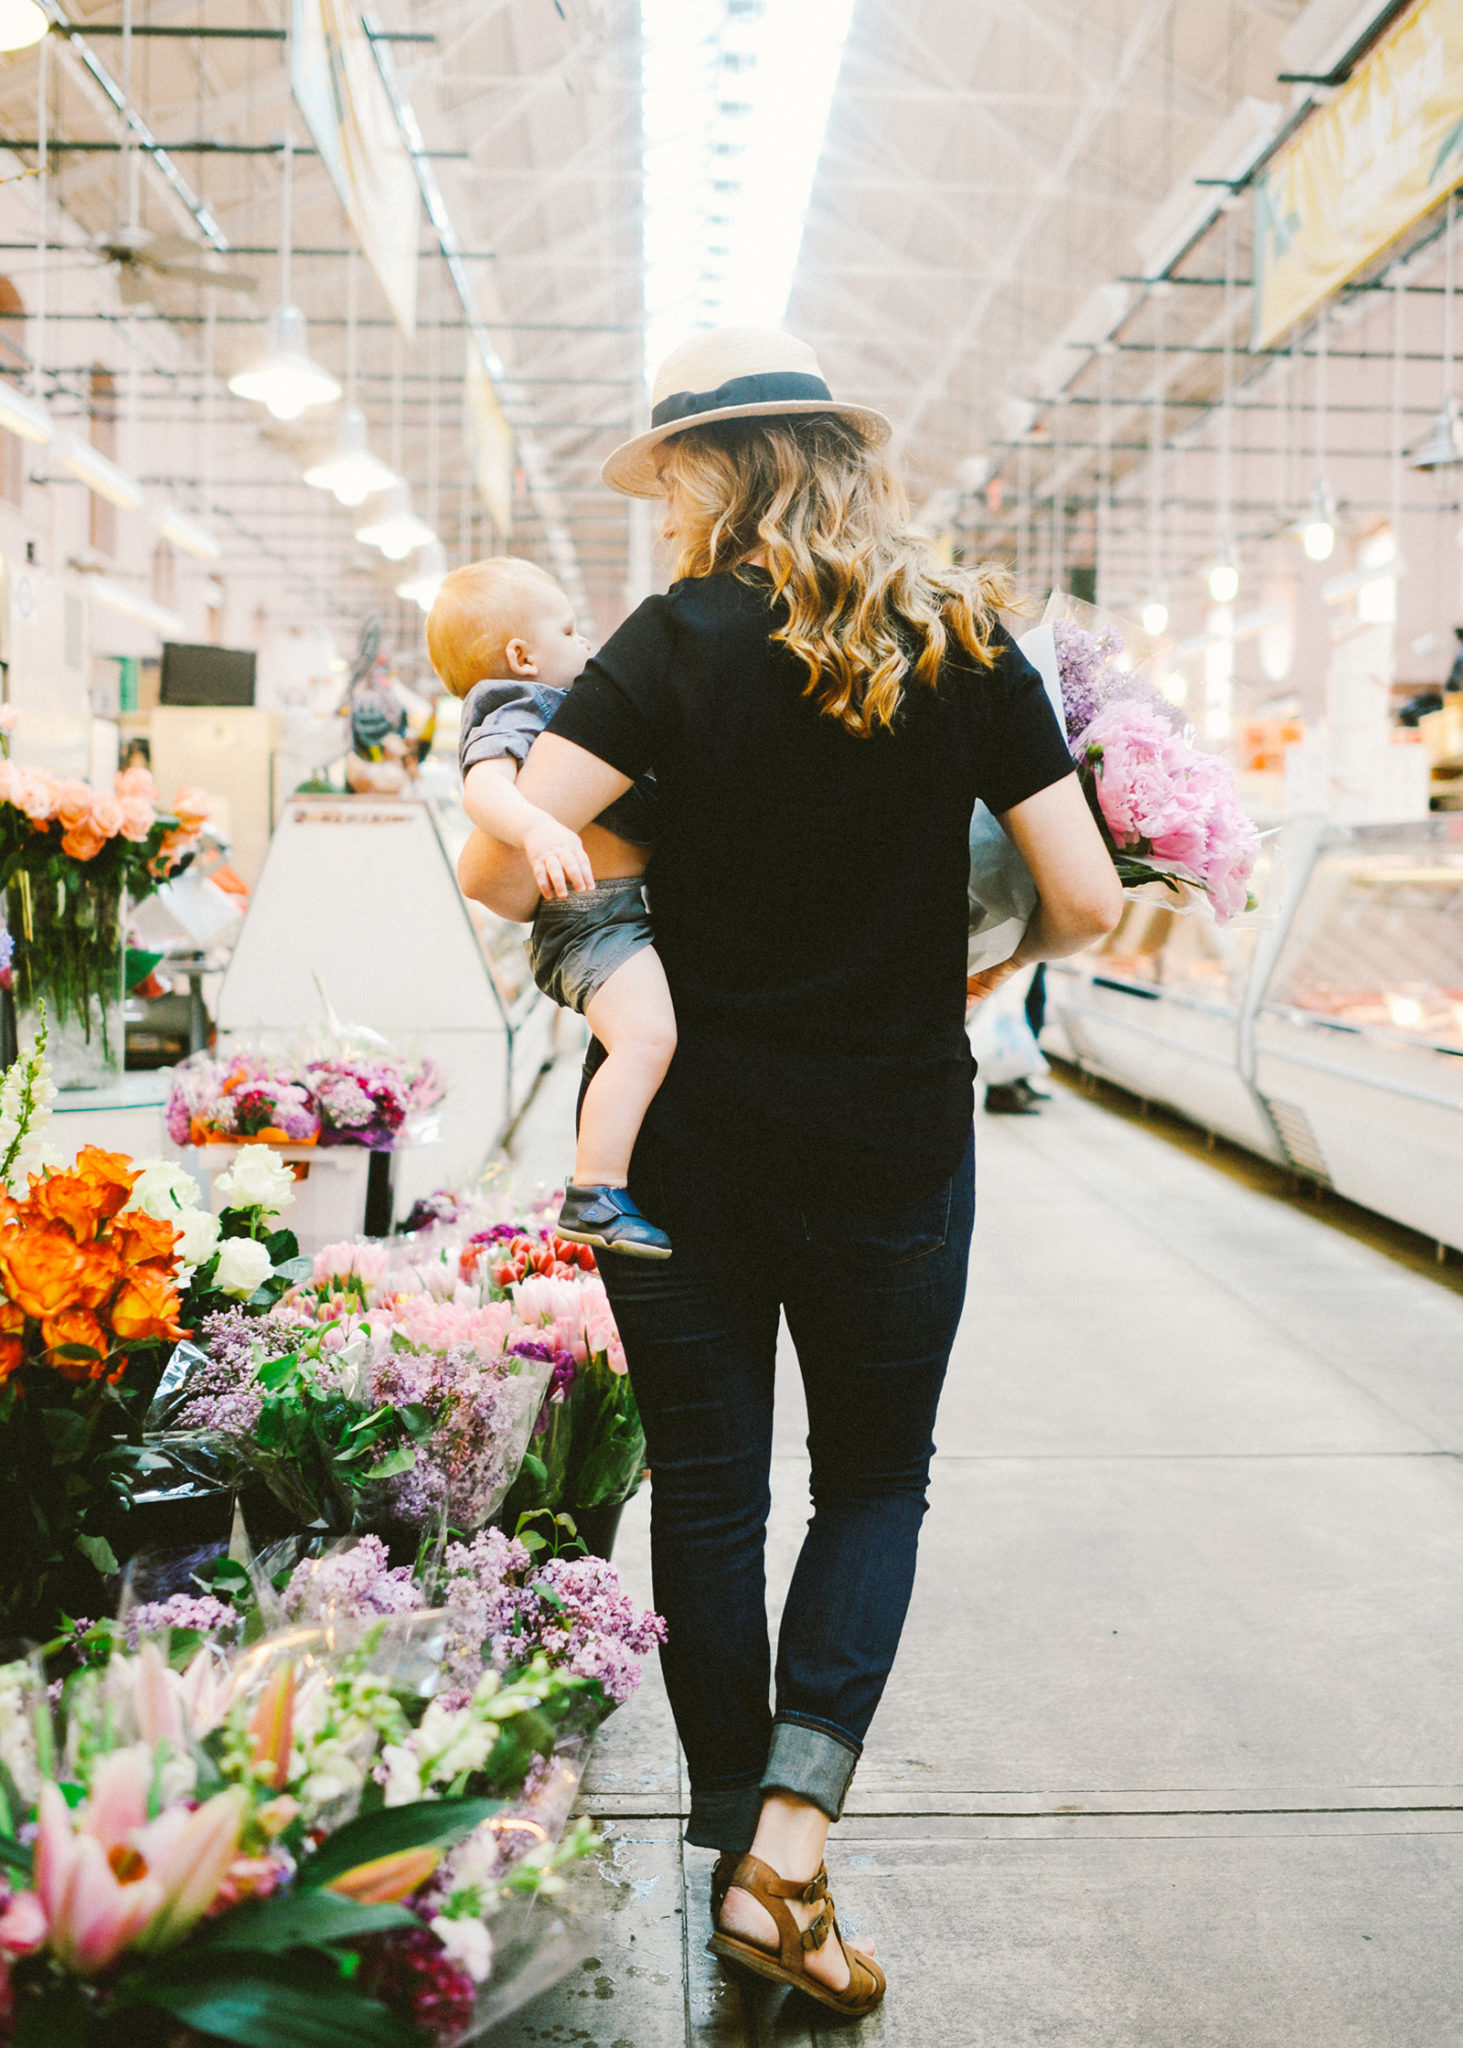 When we Bloom a post about finding our footing within changes and relizing blooming happens within the full current of our life. Read the full story from Hannah of The Art in Life on The Fresh Exchange today.